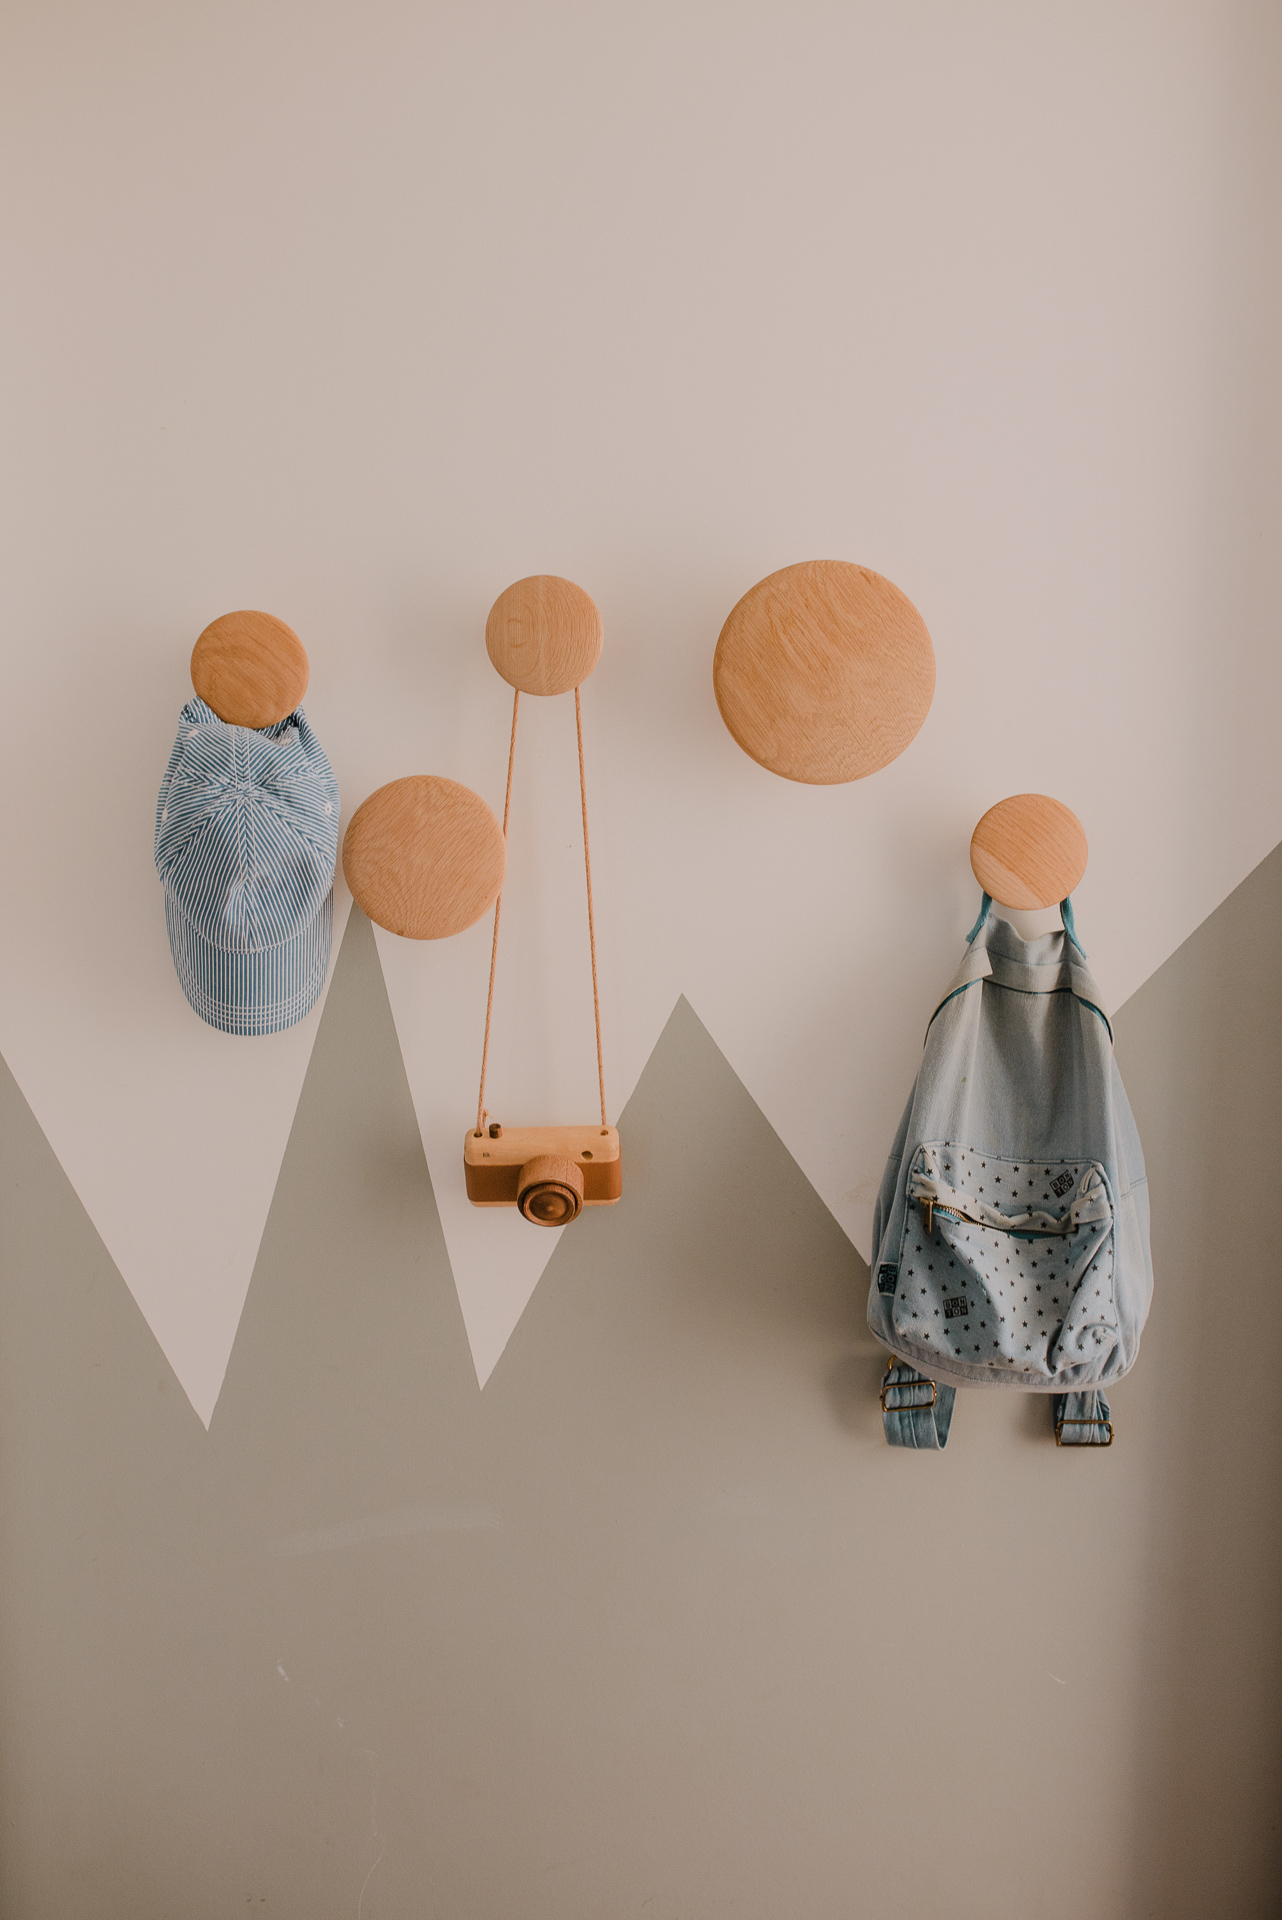 quarto kids oscar 07 july lolla - Kids Decor: Um quartinho lindo e cool, por uma leitora do Lolla